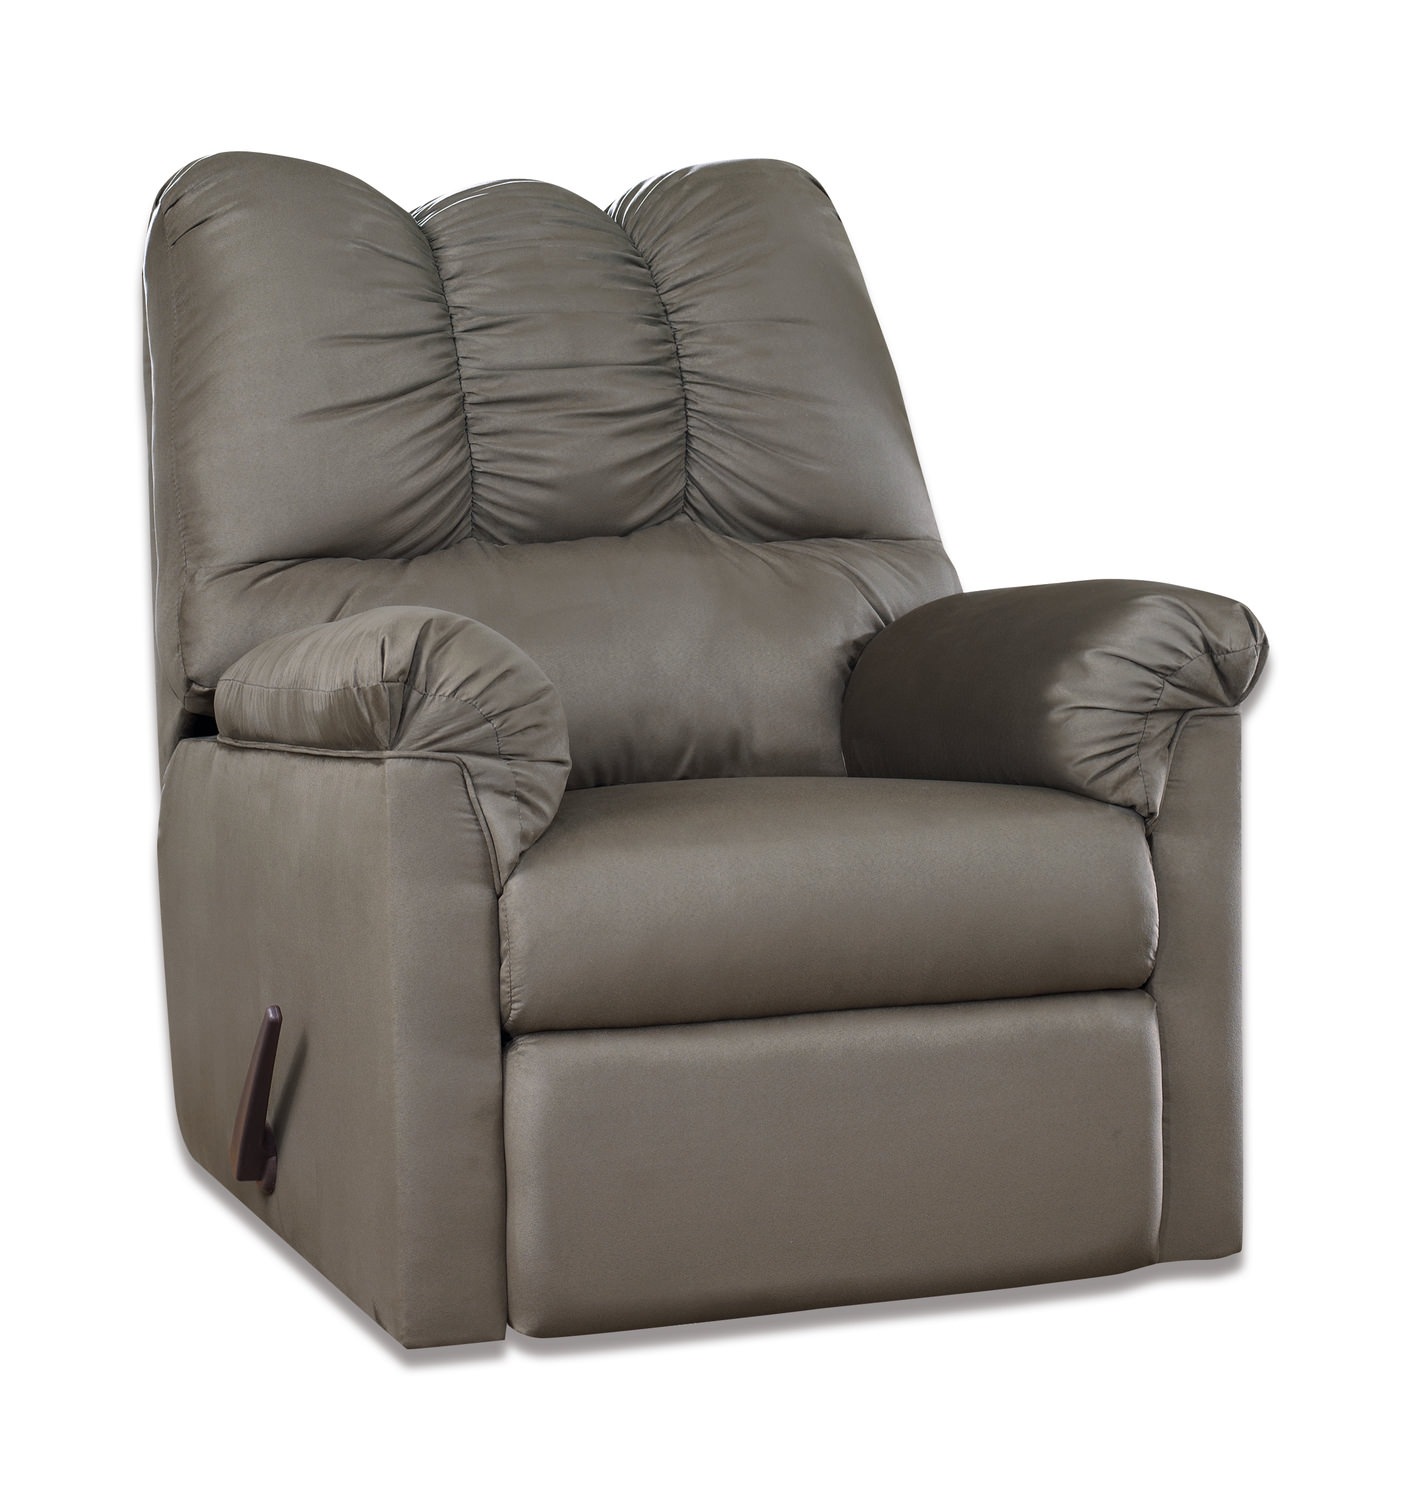 Rocking recliner chairs - Almath Rocker Recliner